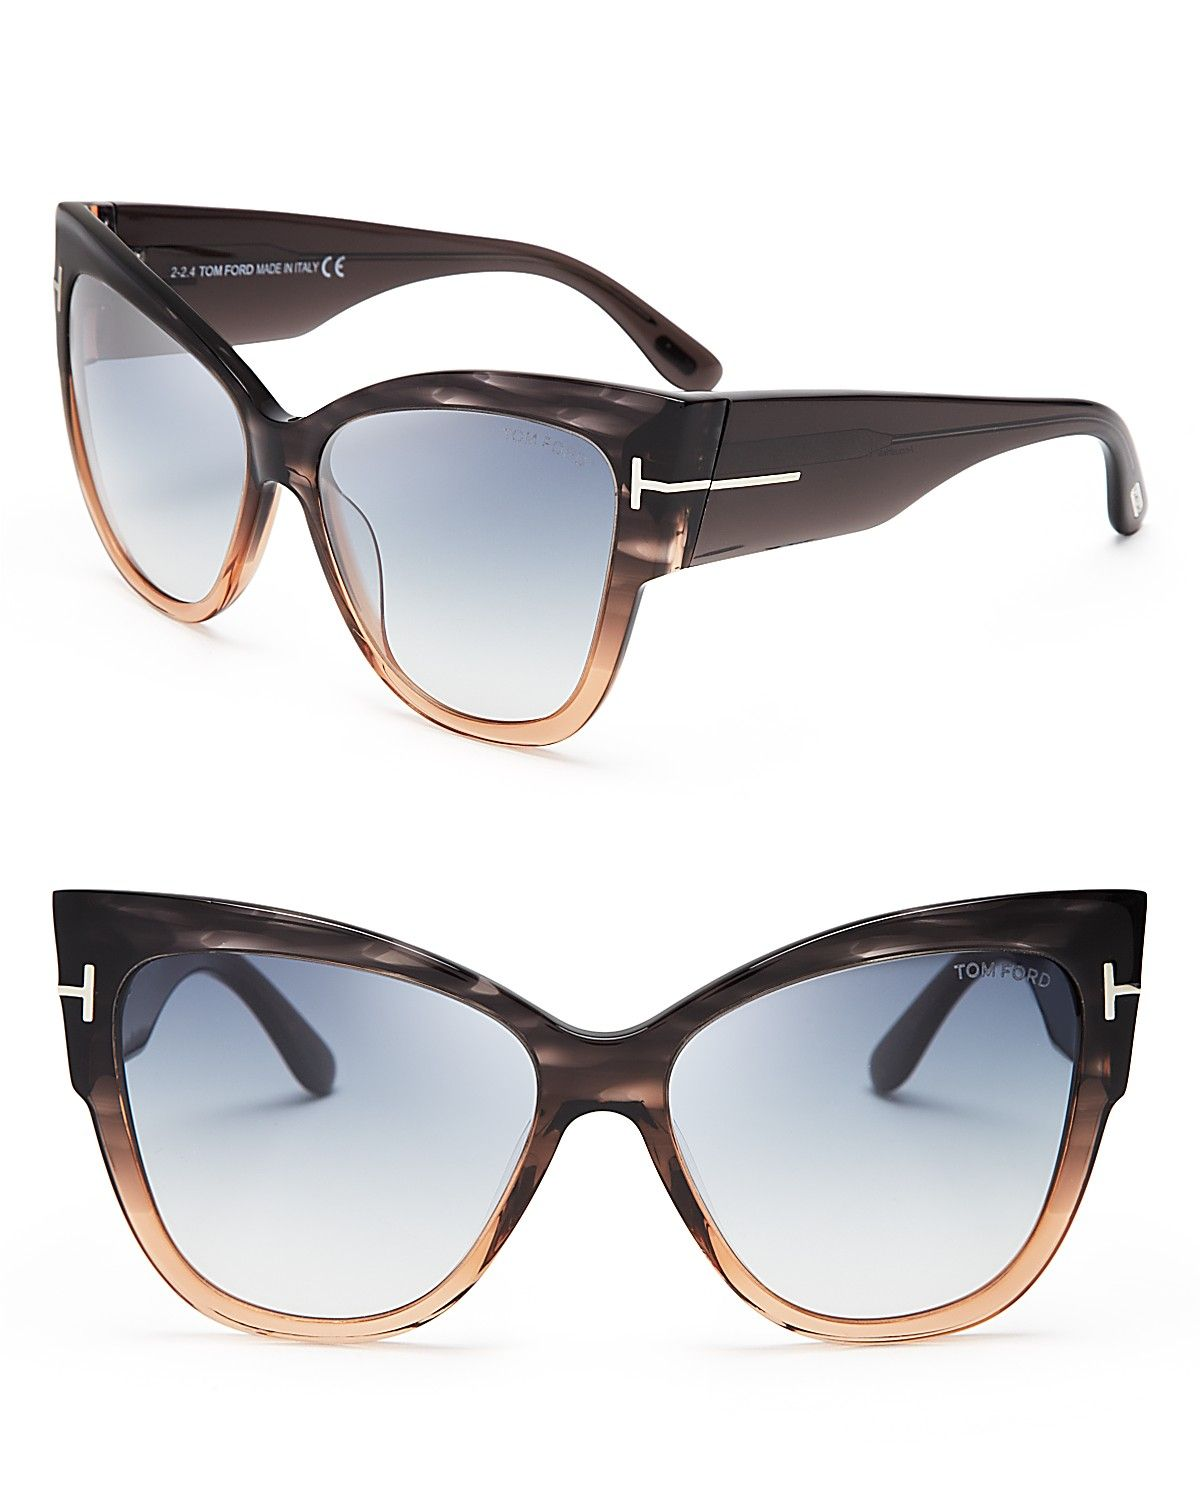 Tom Ford Anoushka Cat Eye Sunglasses | $425 | EYE DO | Pinterest ...